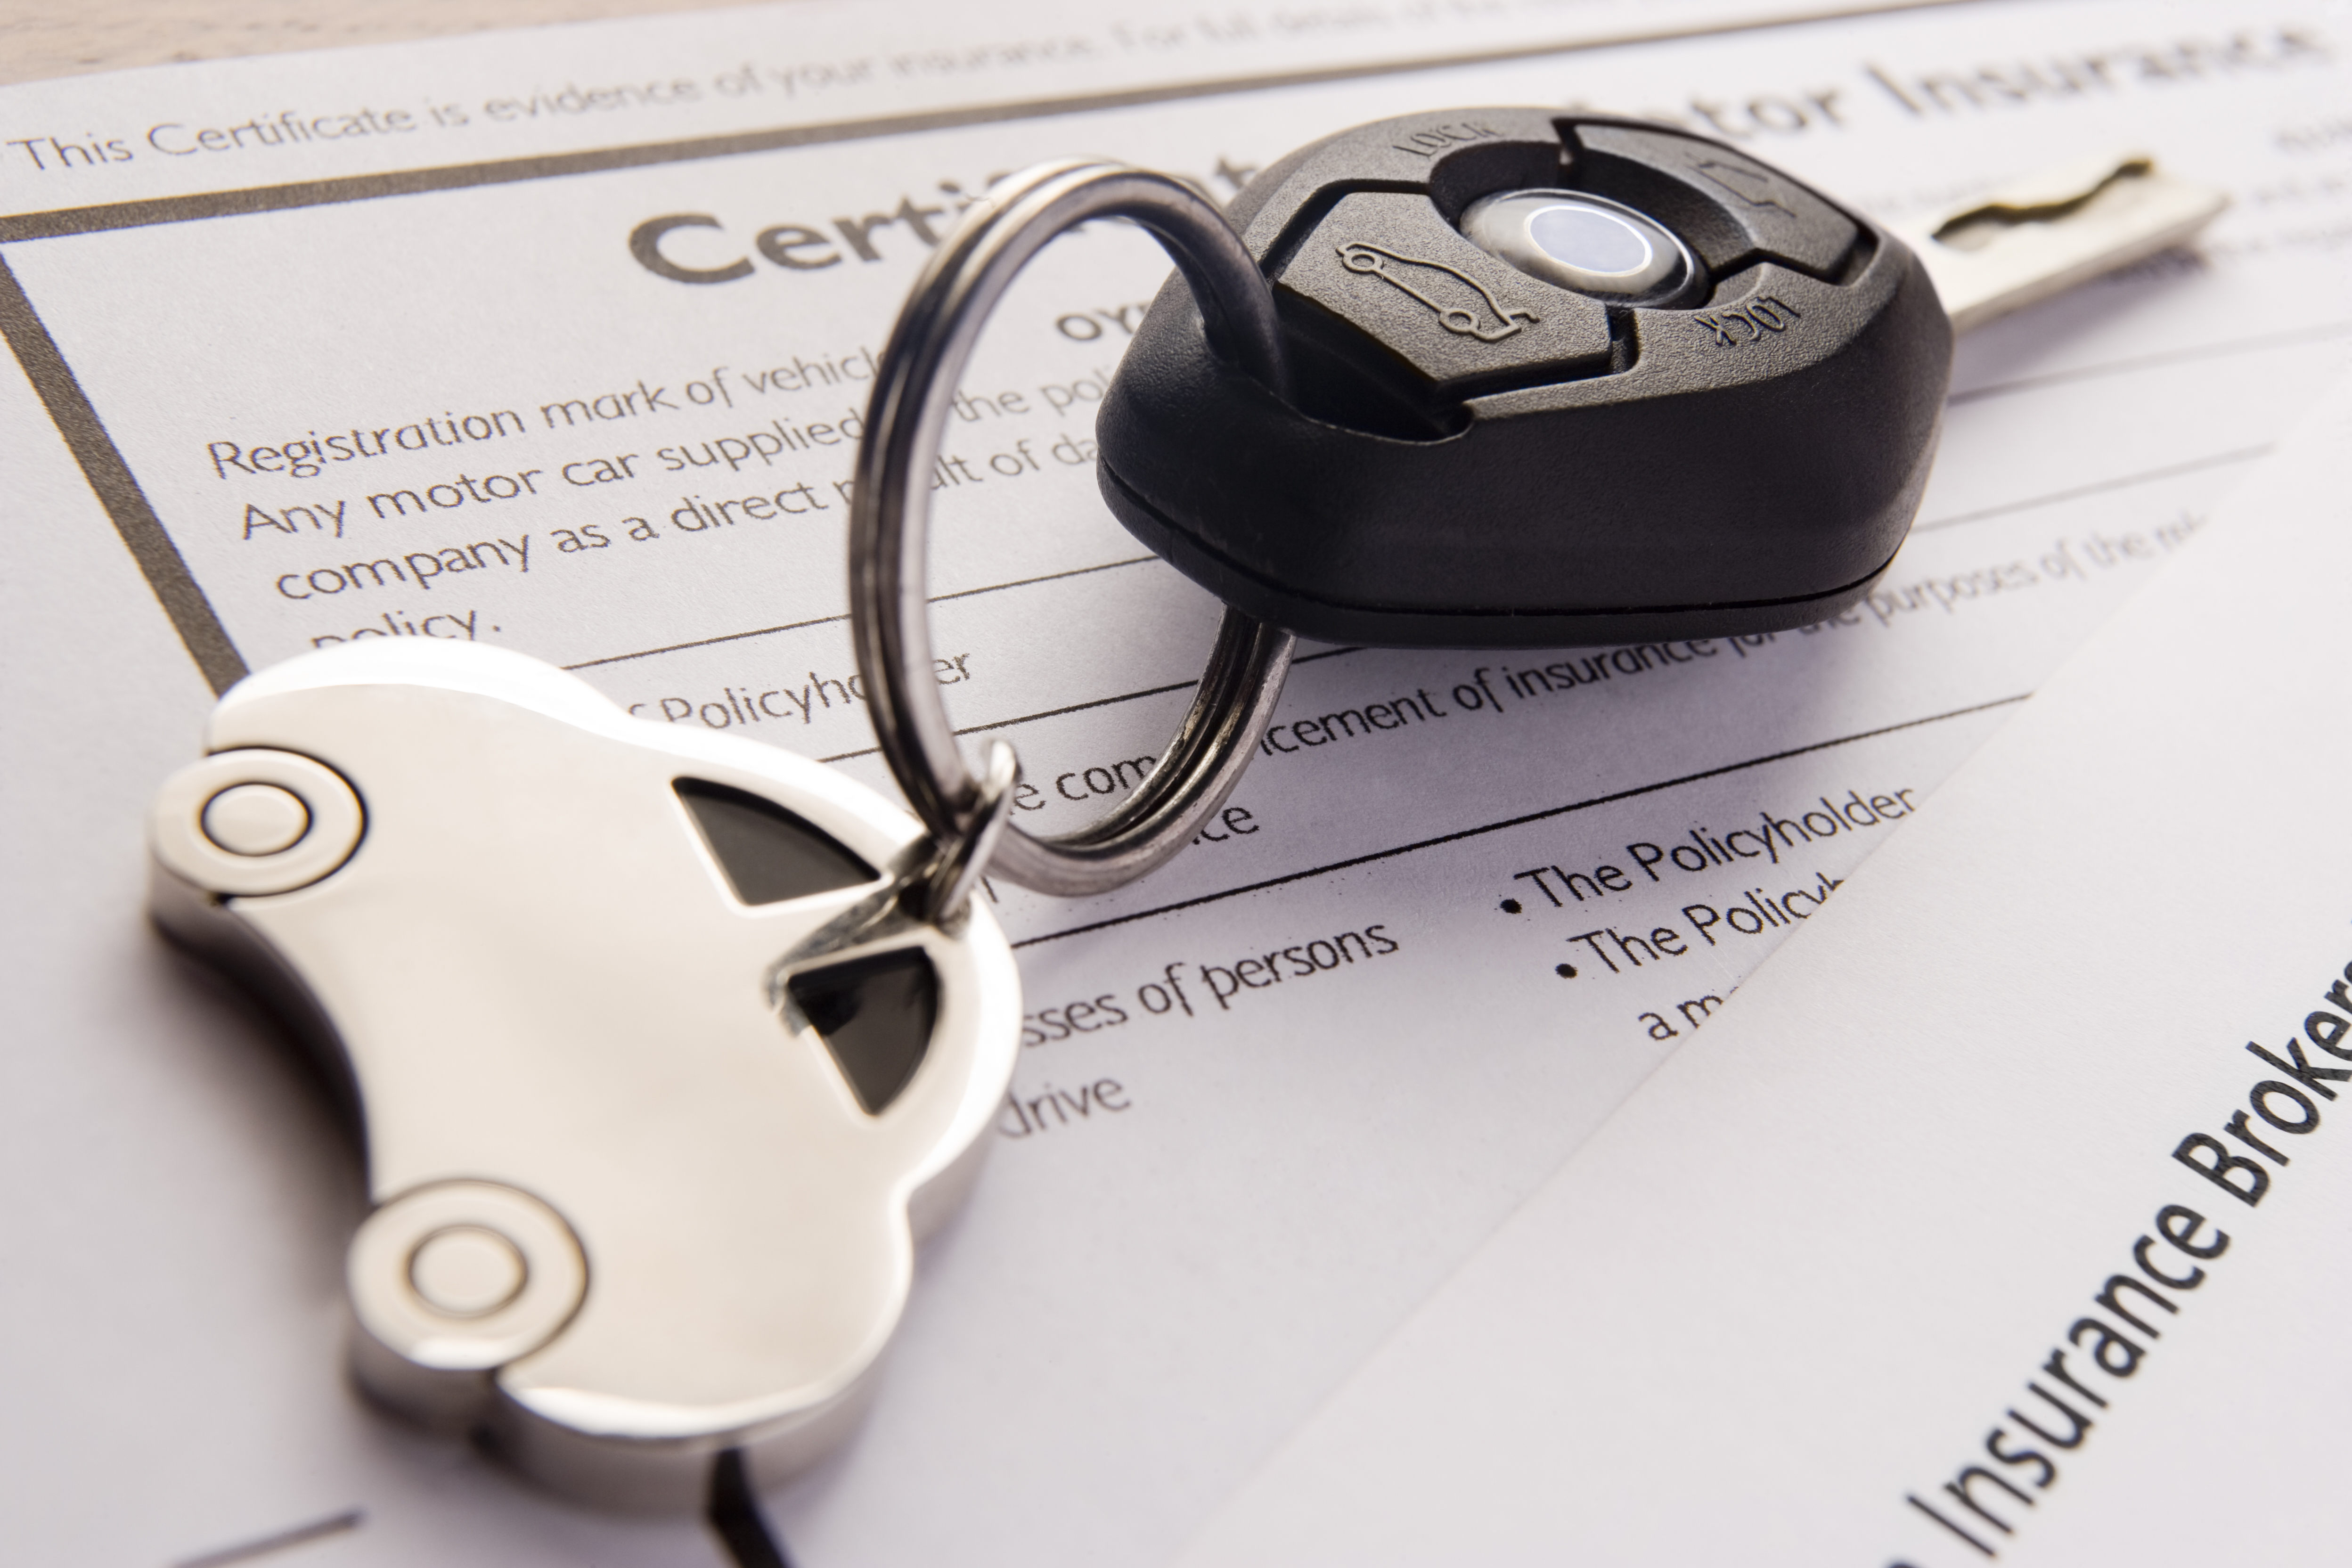 Talk to your car insurer to see if you can get some money back